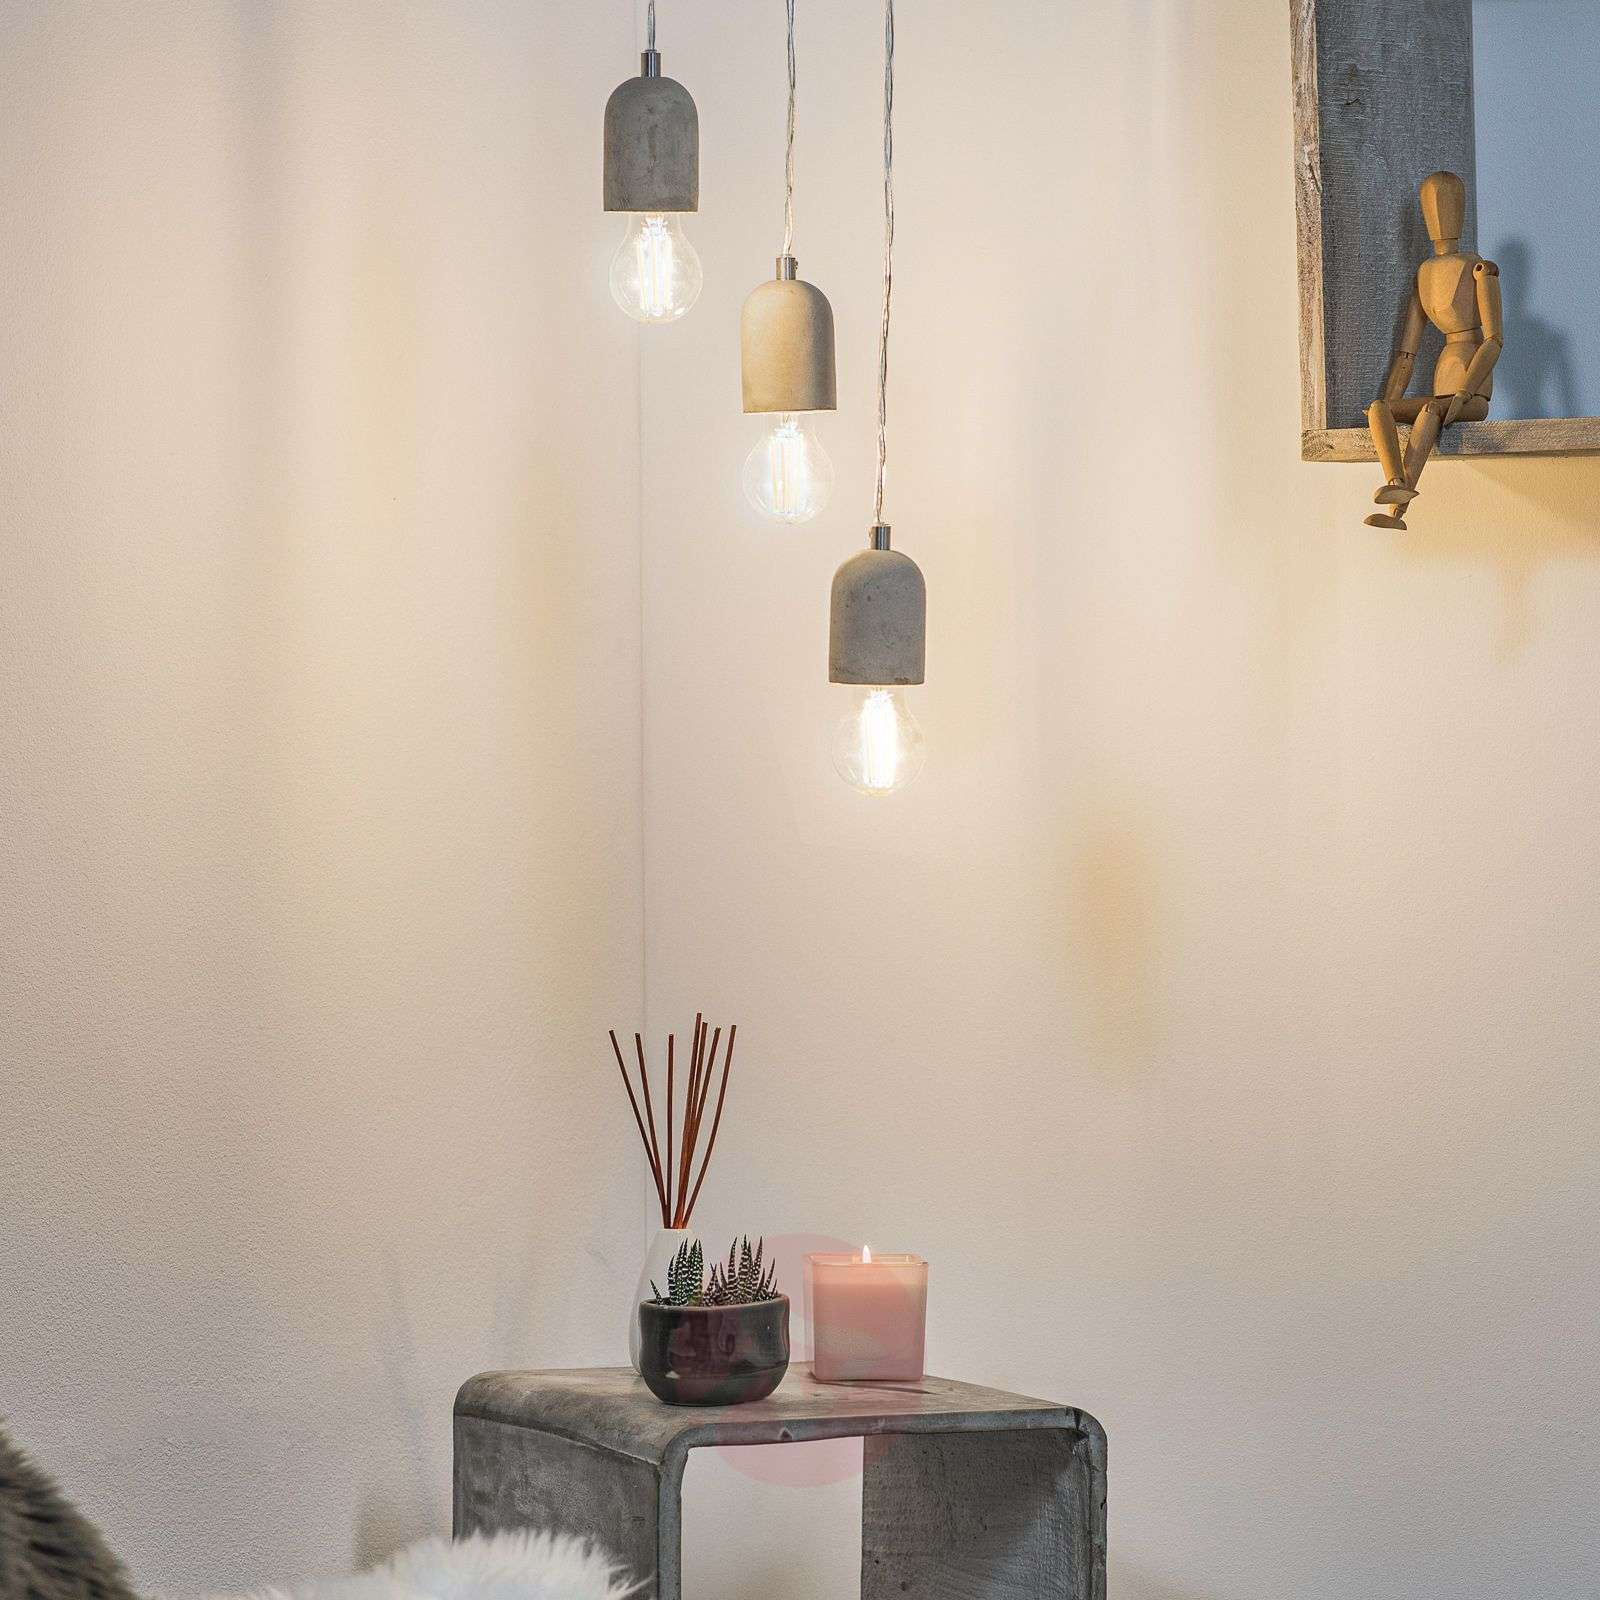 Silvares hanging light with minimalist design-3031817-01